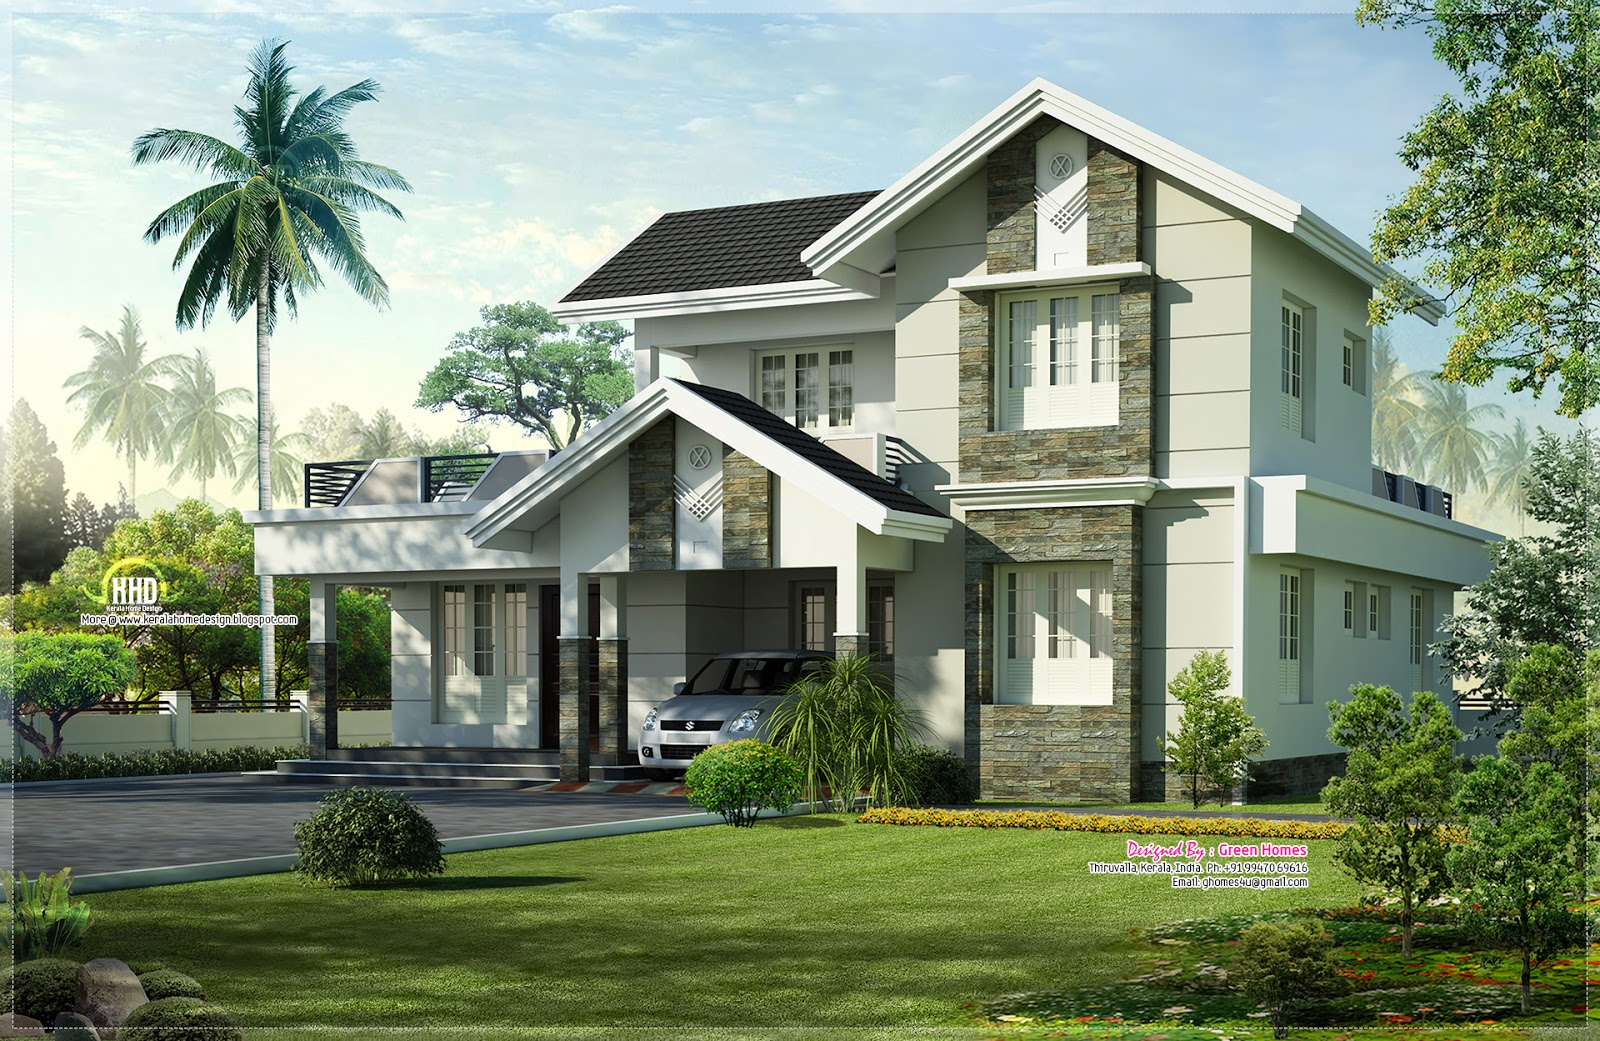 1975 nice home exterior design kerala home for Exterior stone wall house design